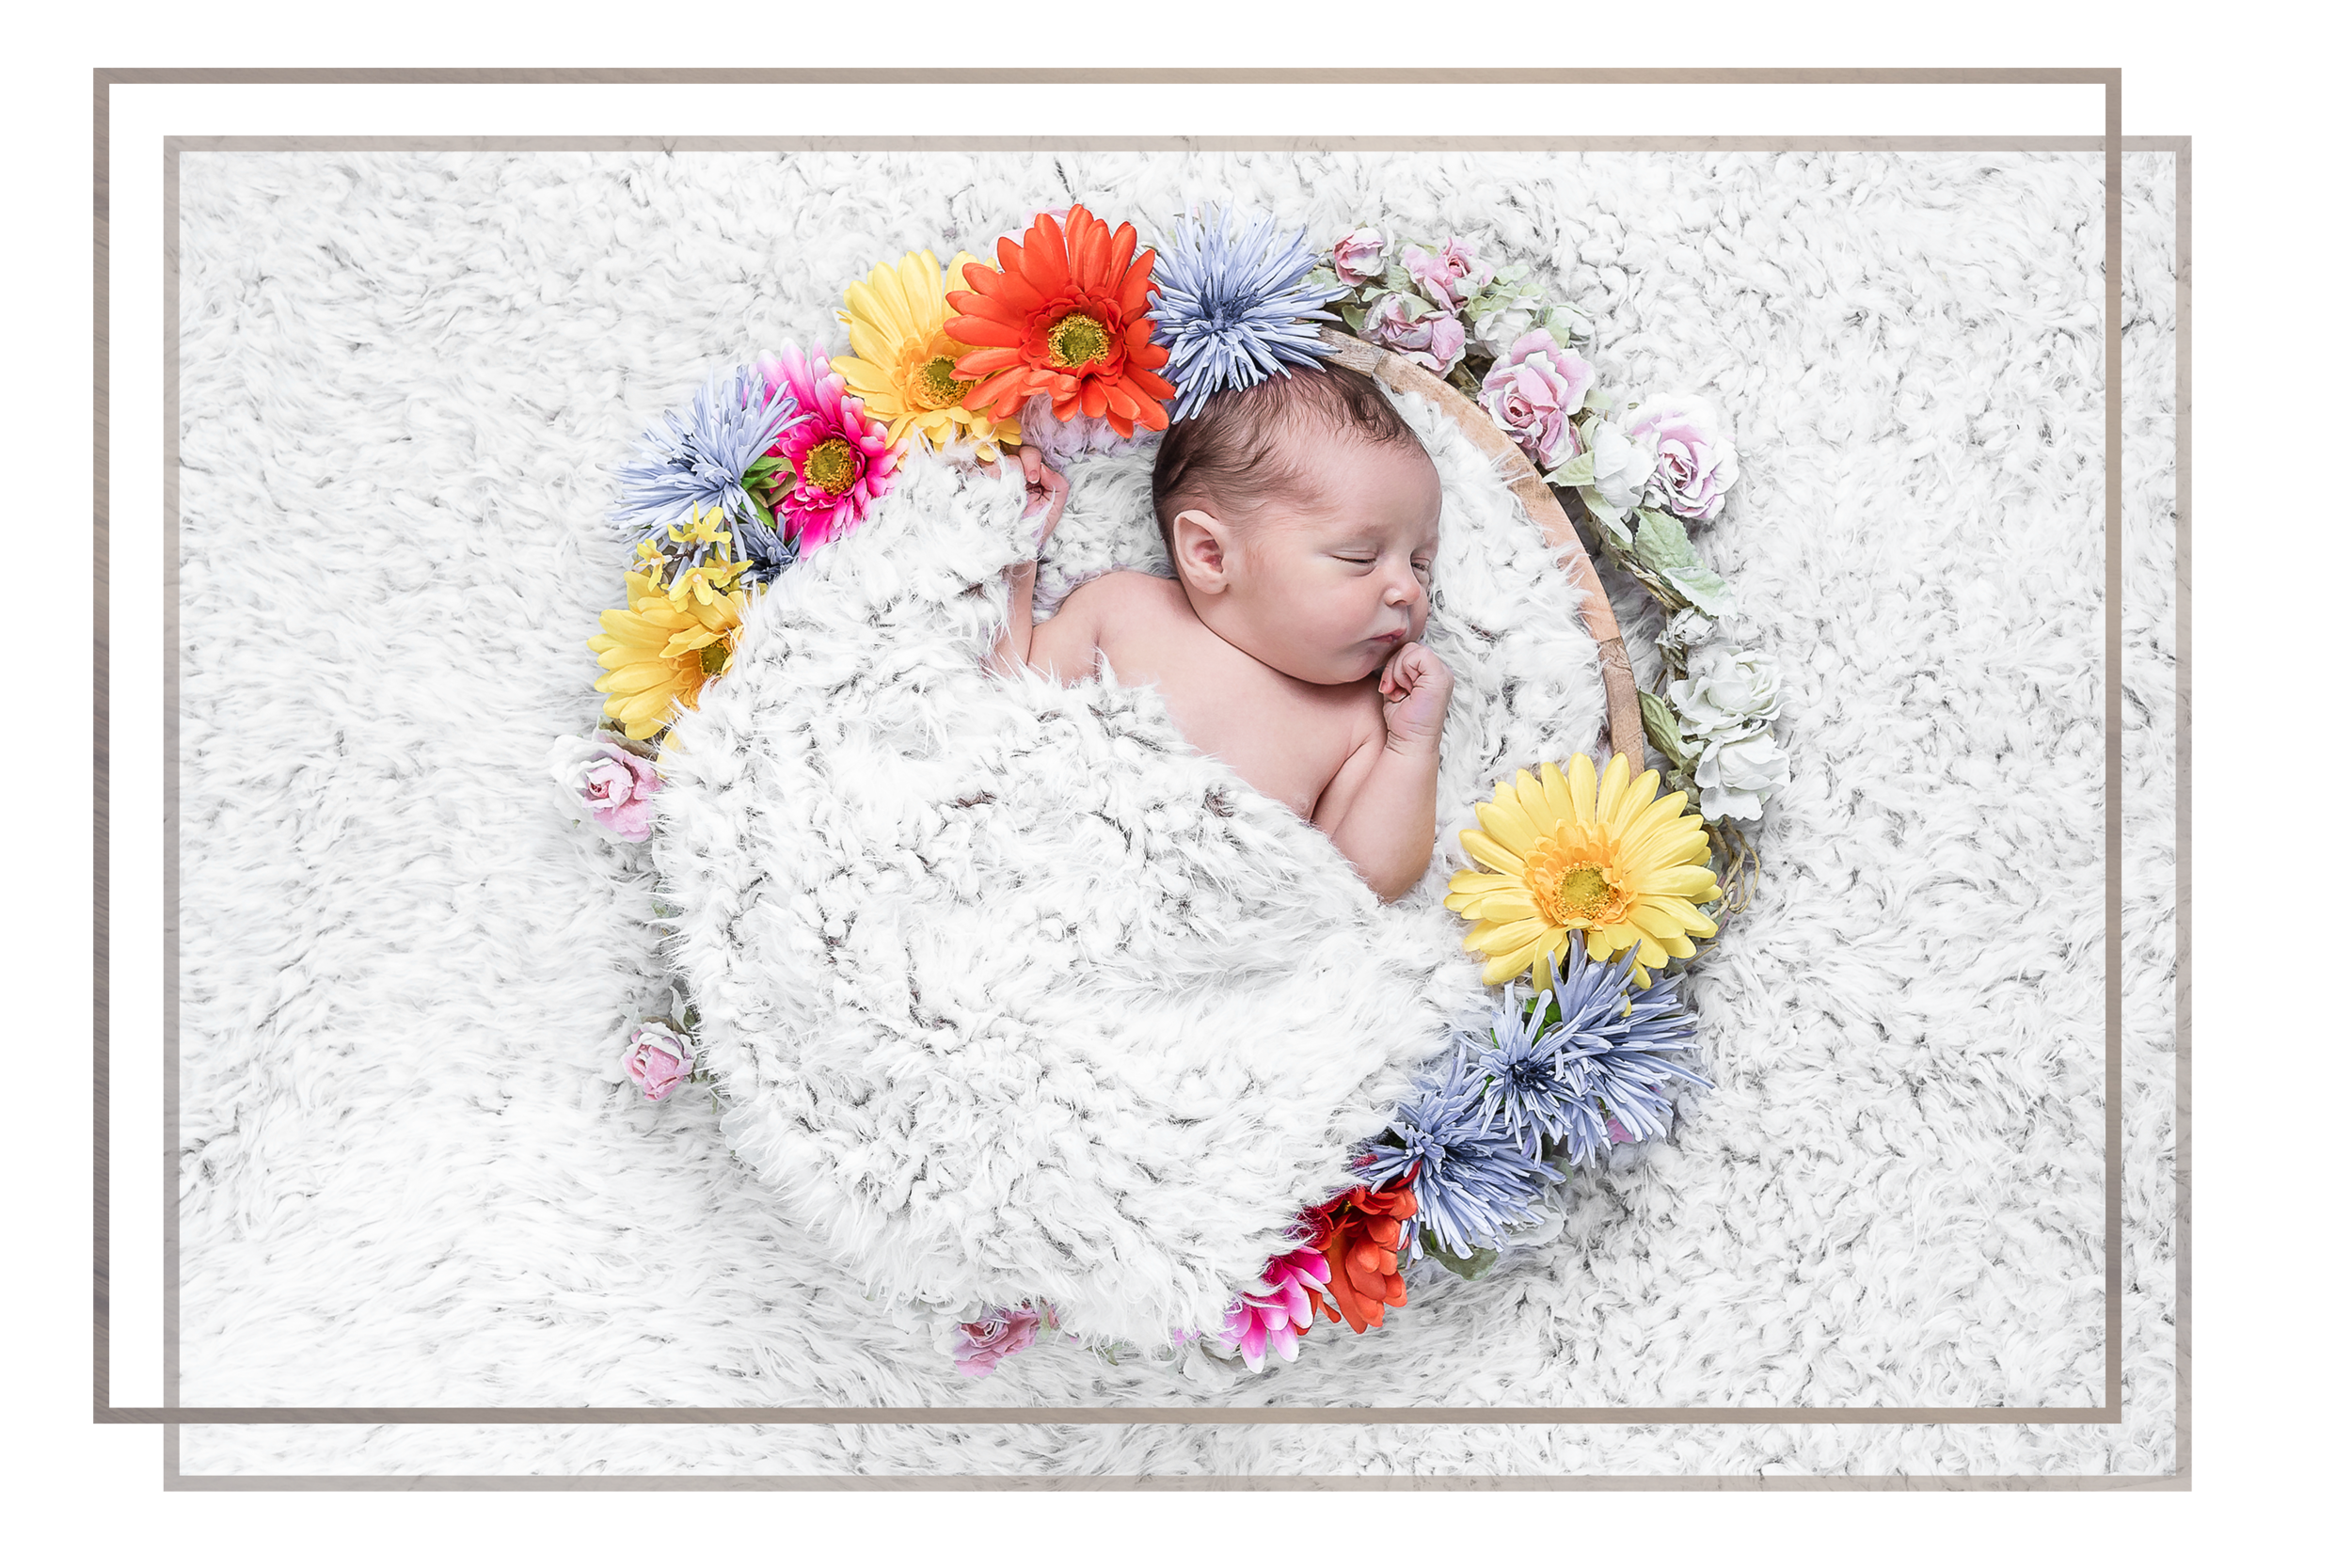 NEWBORN sessions - In a calm and relaxed studio we spend a few hours getting those precious early photos of your new arrival. Siblings are welcome and together we can create a large gallery of images with multiple props and materials.